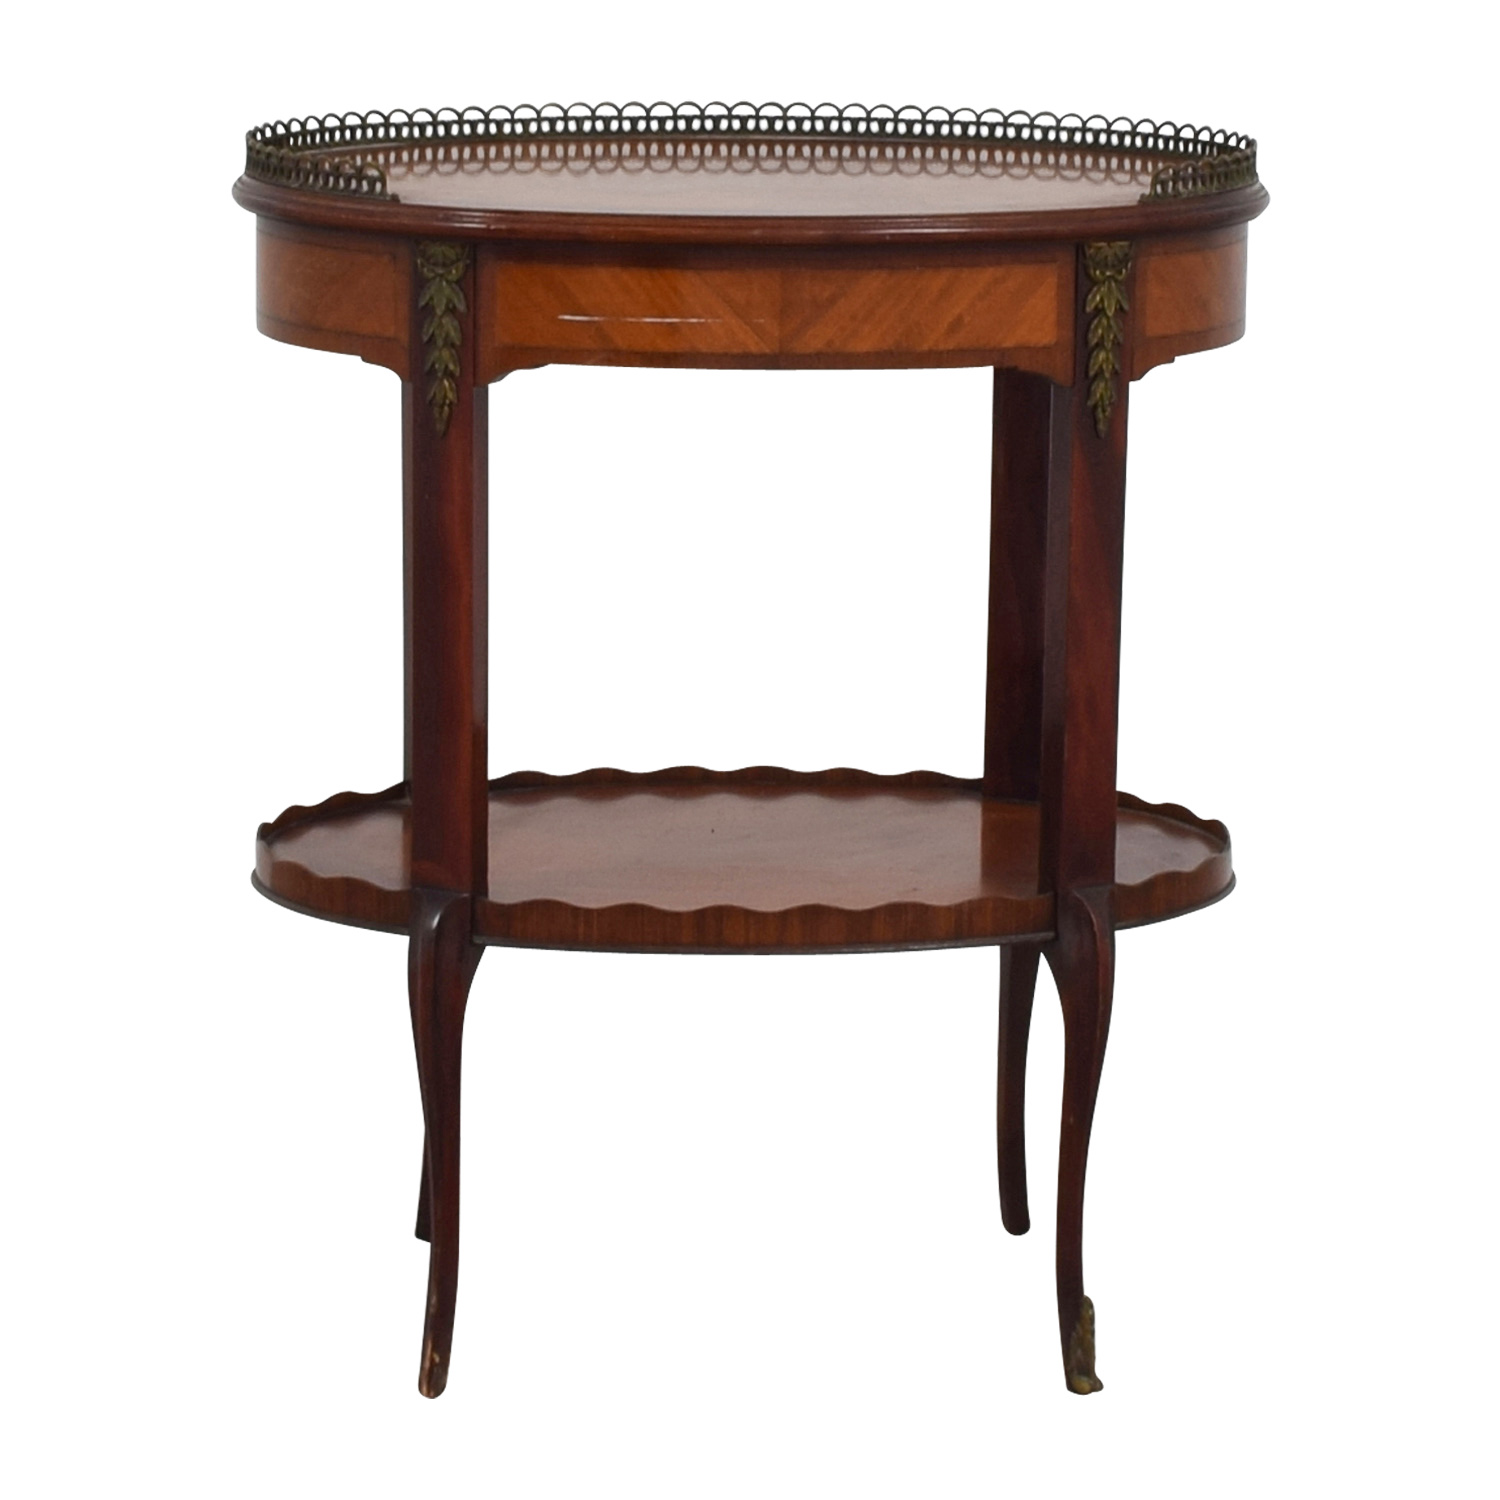 Furniture Masters Furniture Masters Oval End Table with Scalloped and Brass Edges End Tables